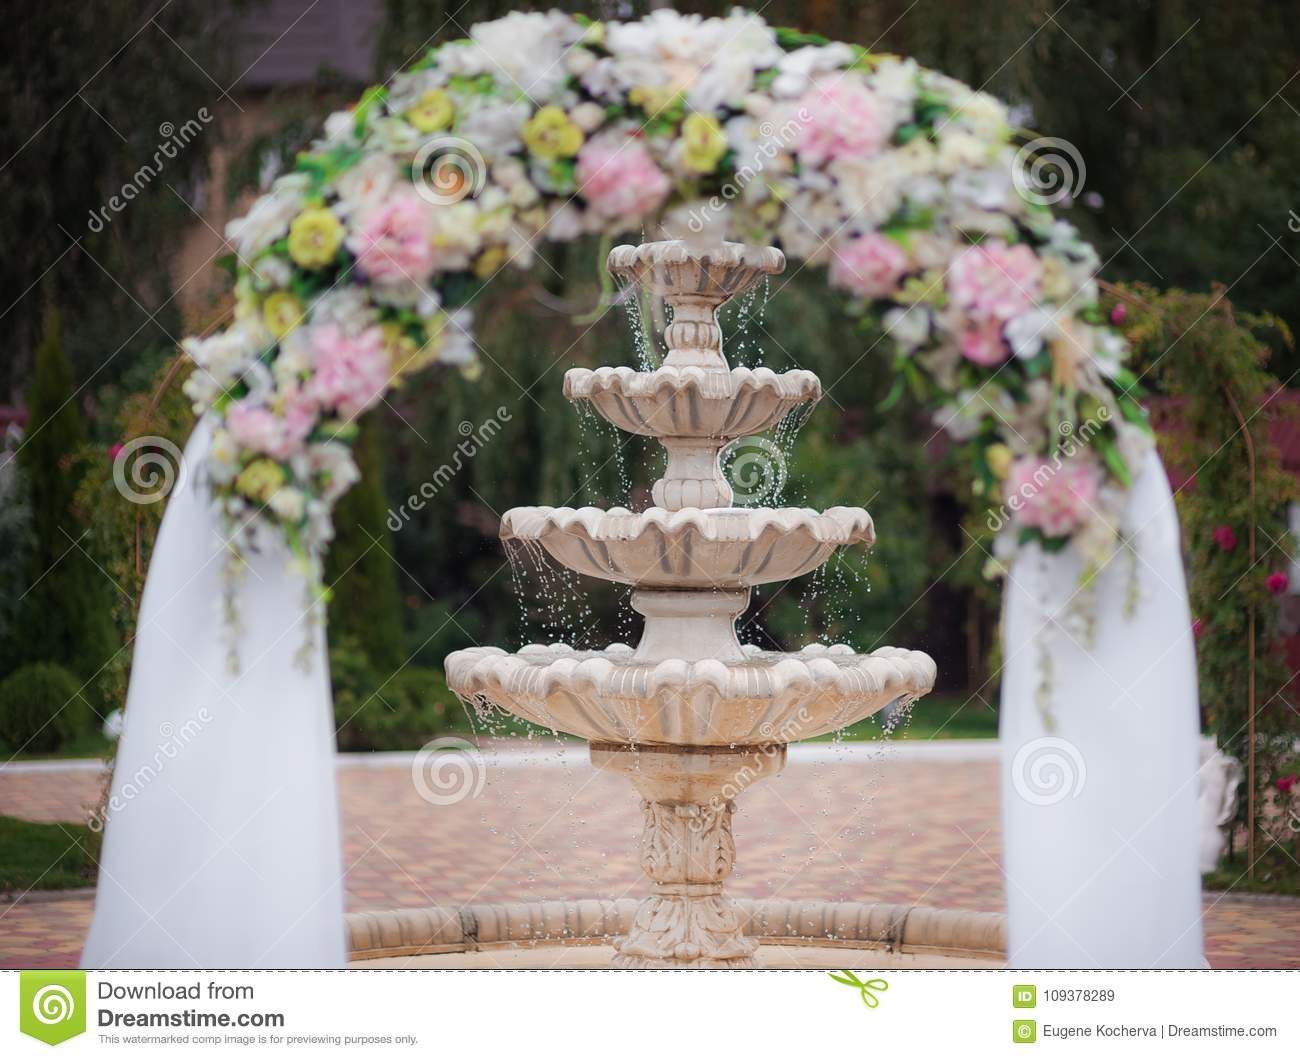 Decoration Of A Wedding Ceremony - An Arch From Flowers Against The ...